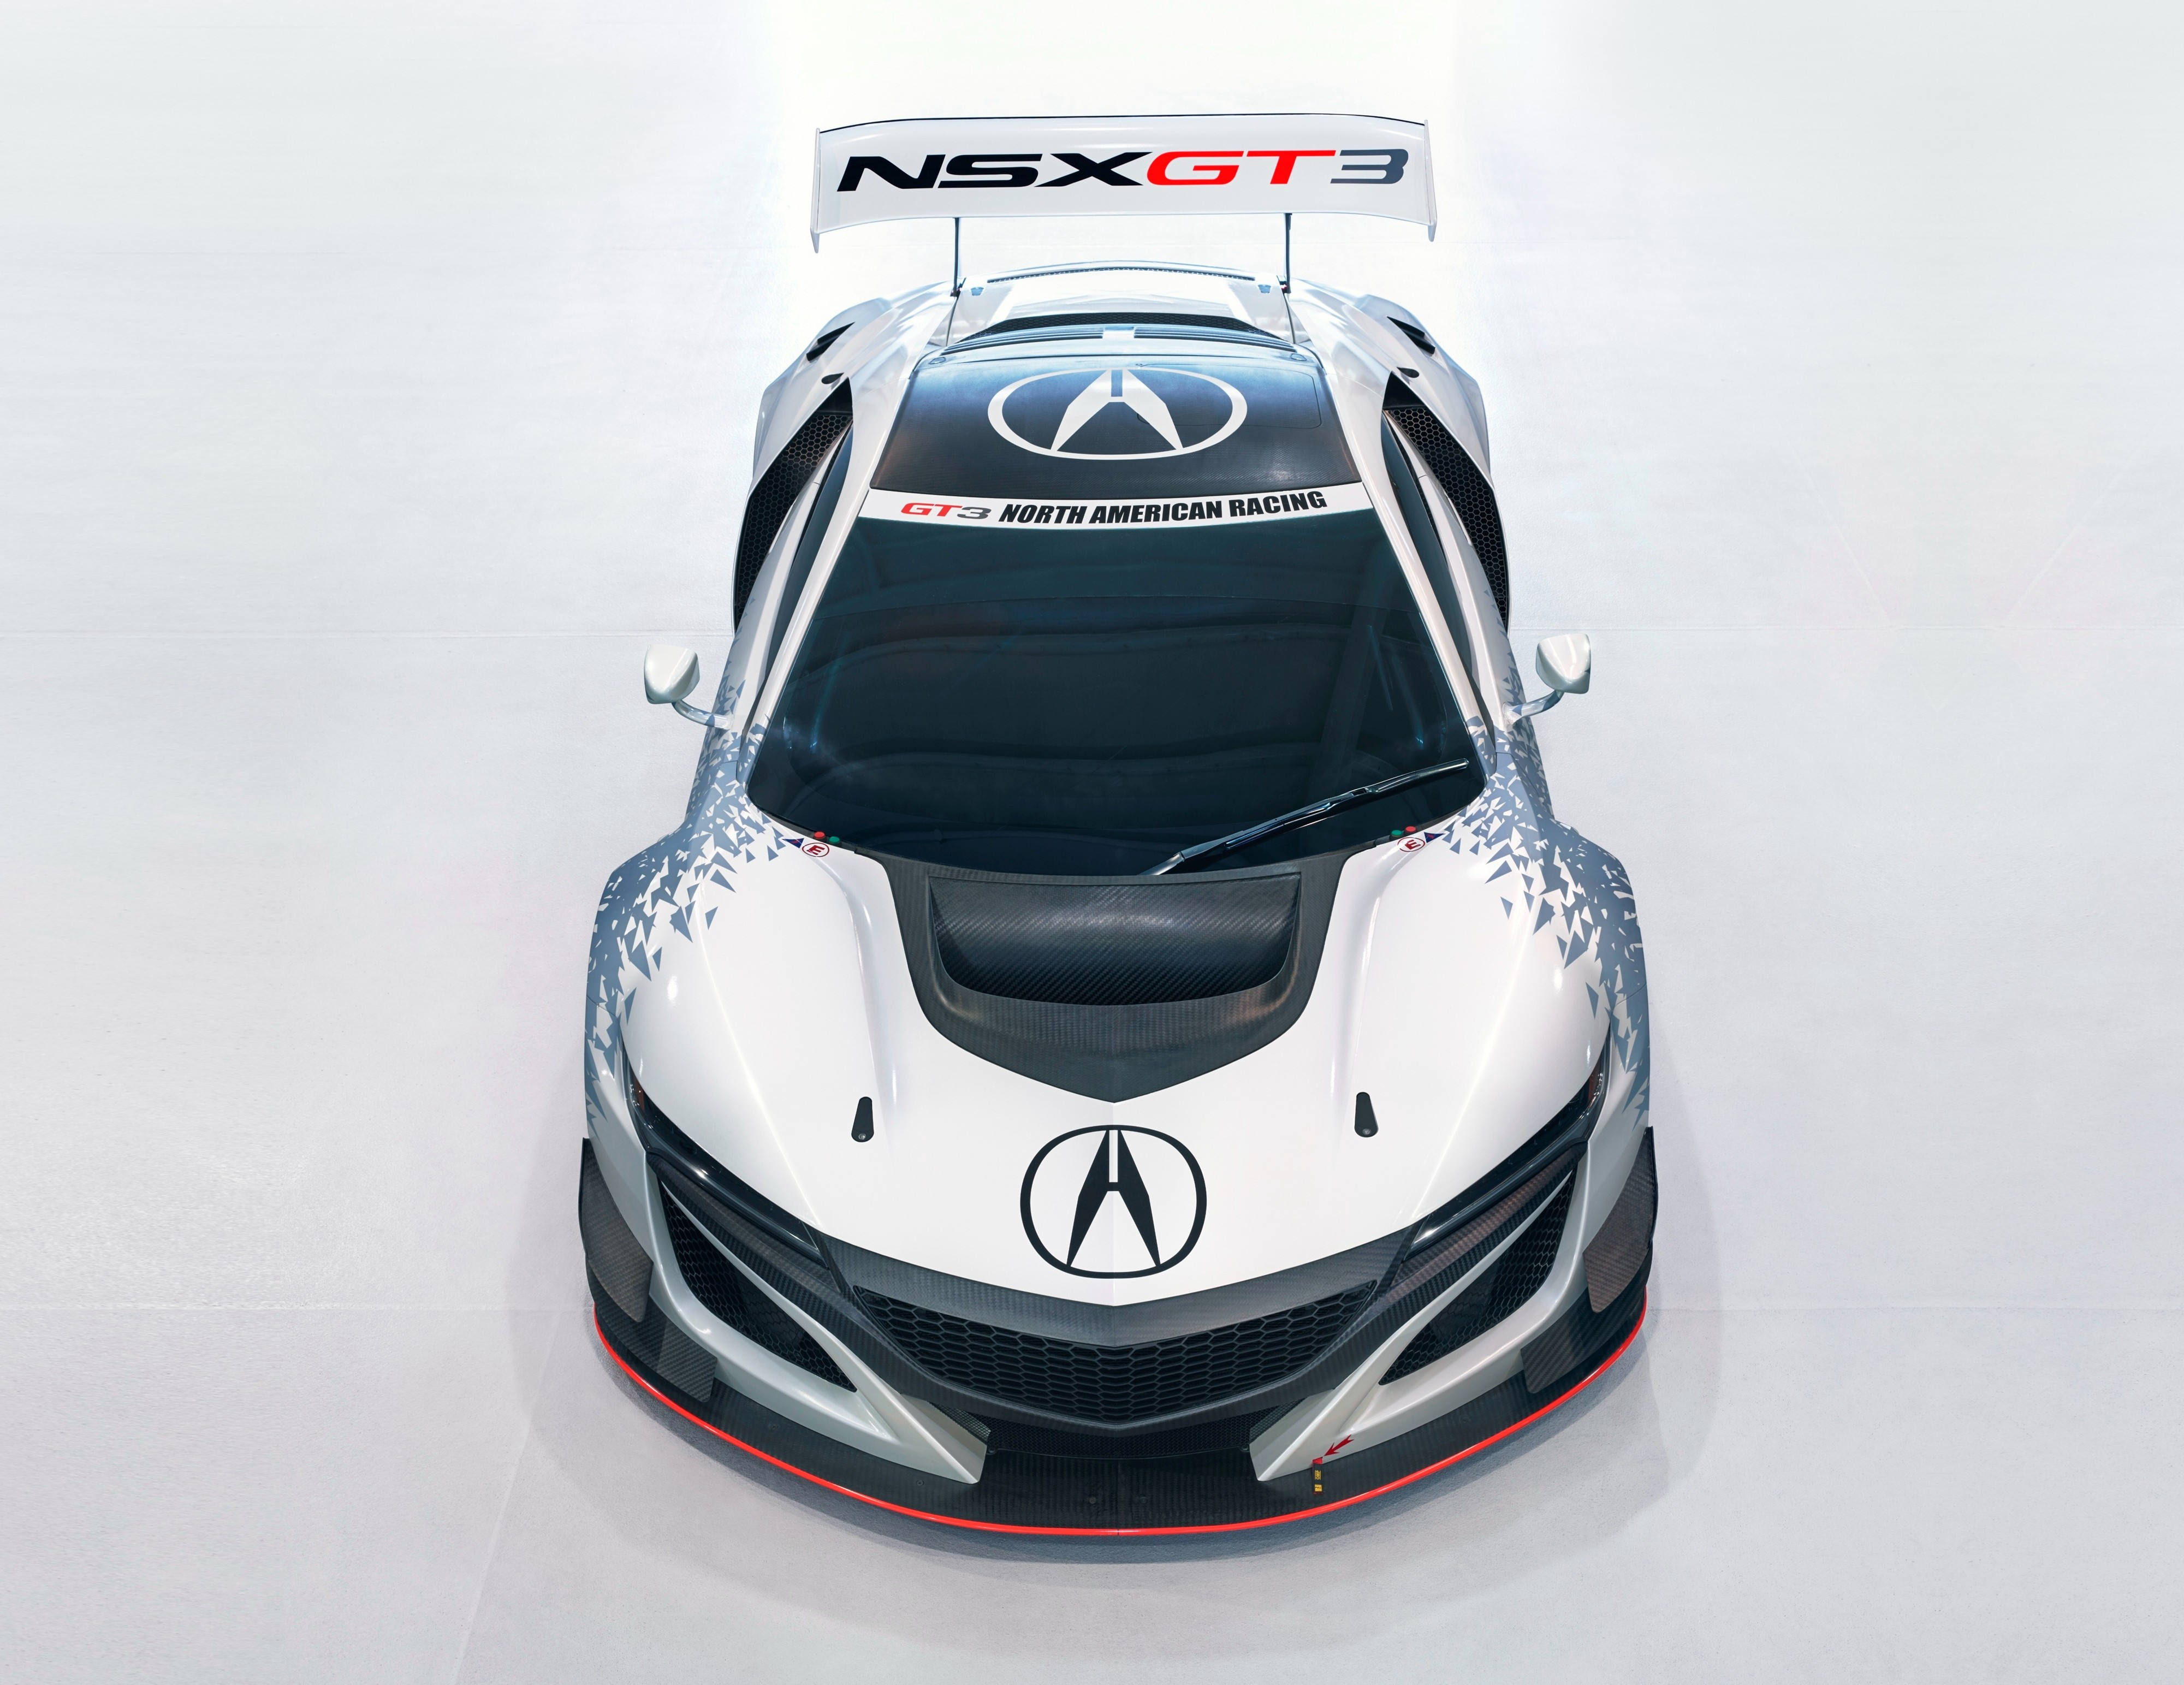 Wallpaper acura nsx gt 3 nyias 2016 cars bikes 9930 for Terengganu home wallpaper 2016